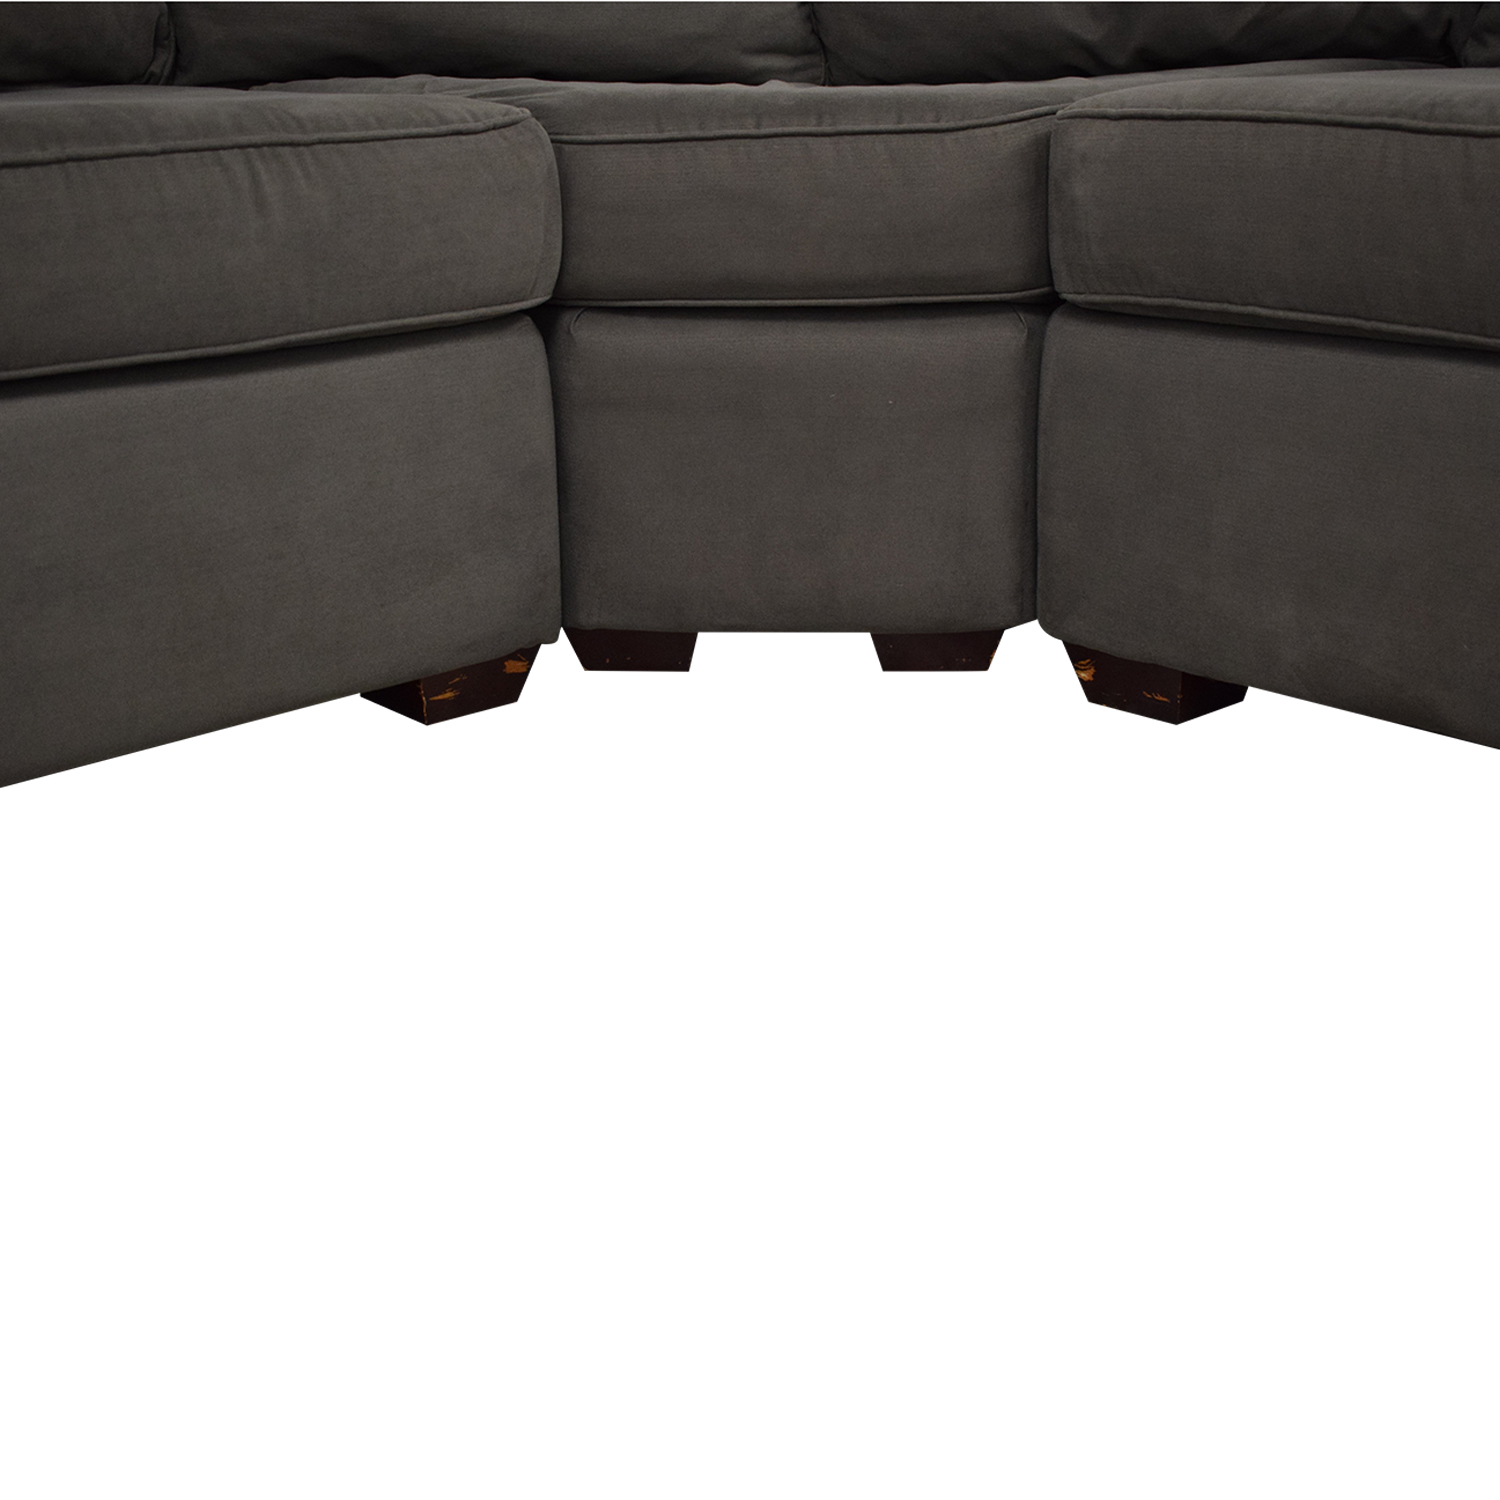 Metropia Metropia Sectional Sofa on sale